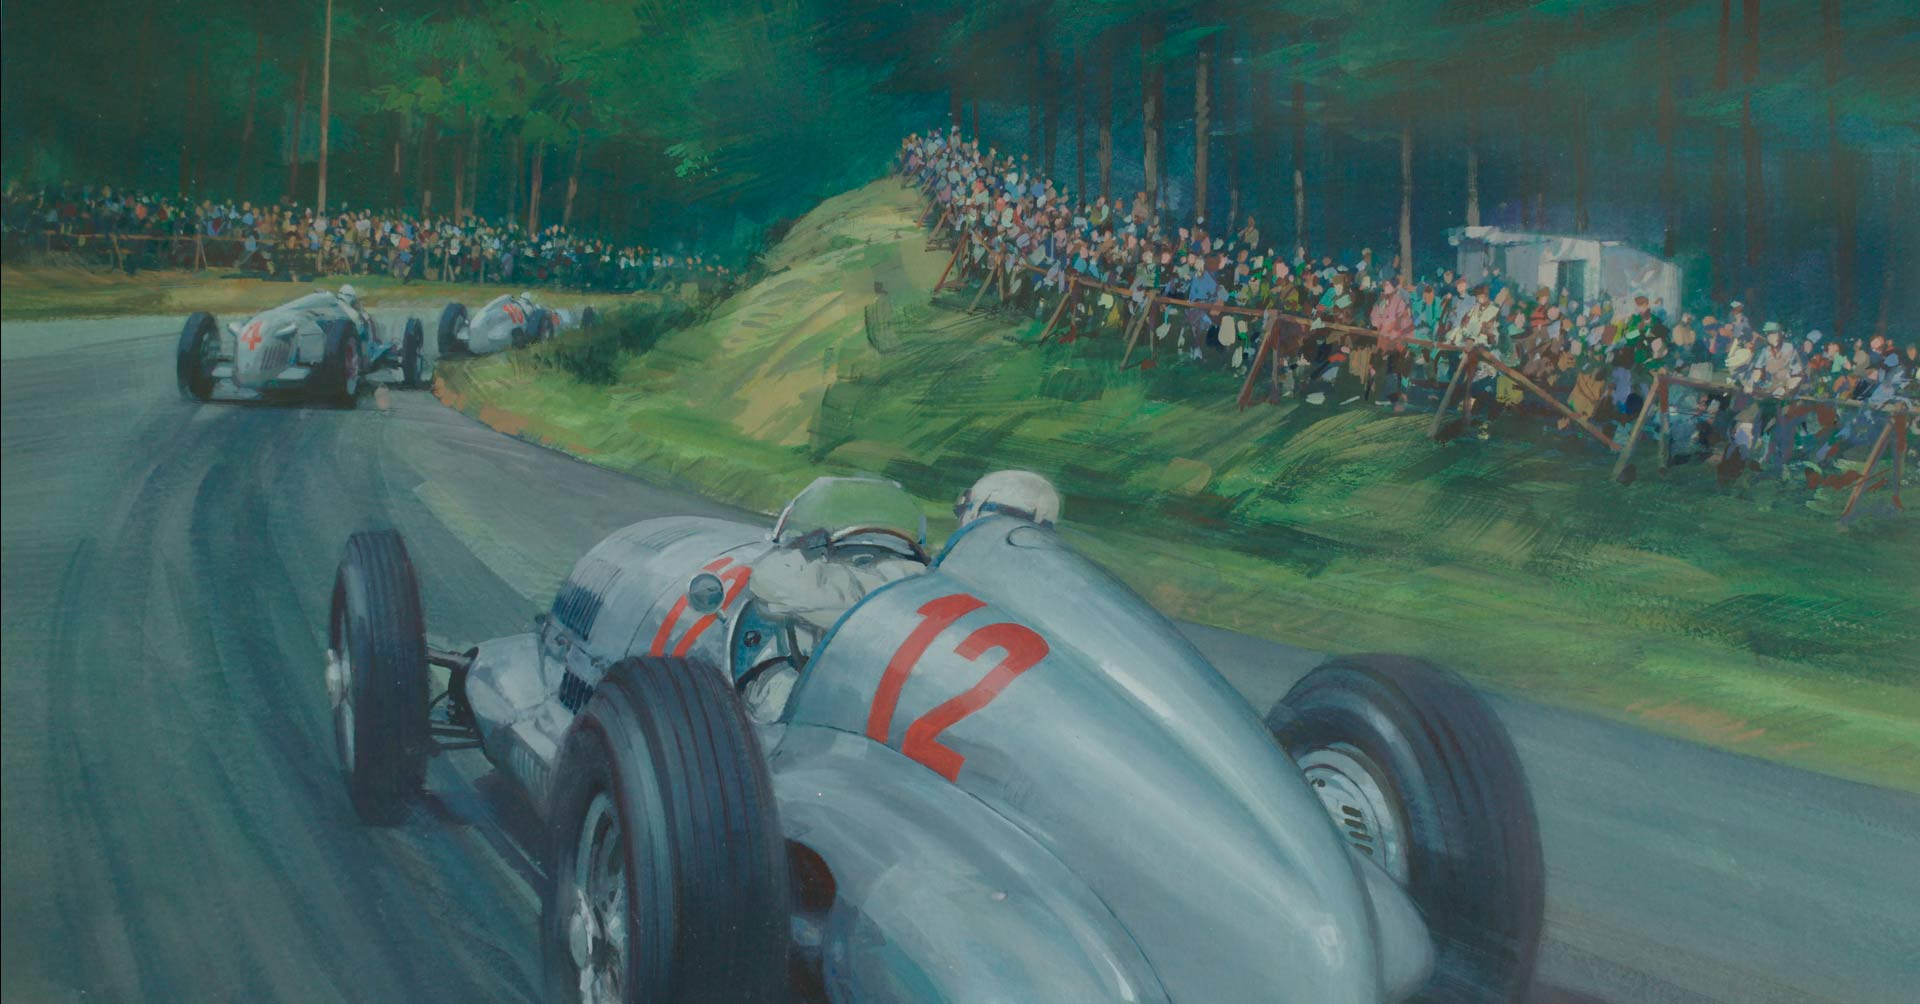 Silver Arrows @ the Green Hell